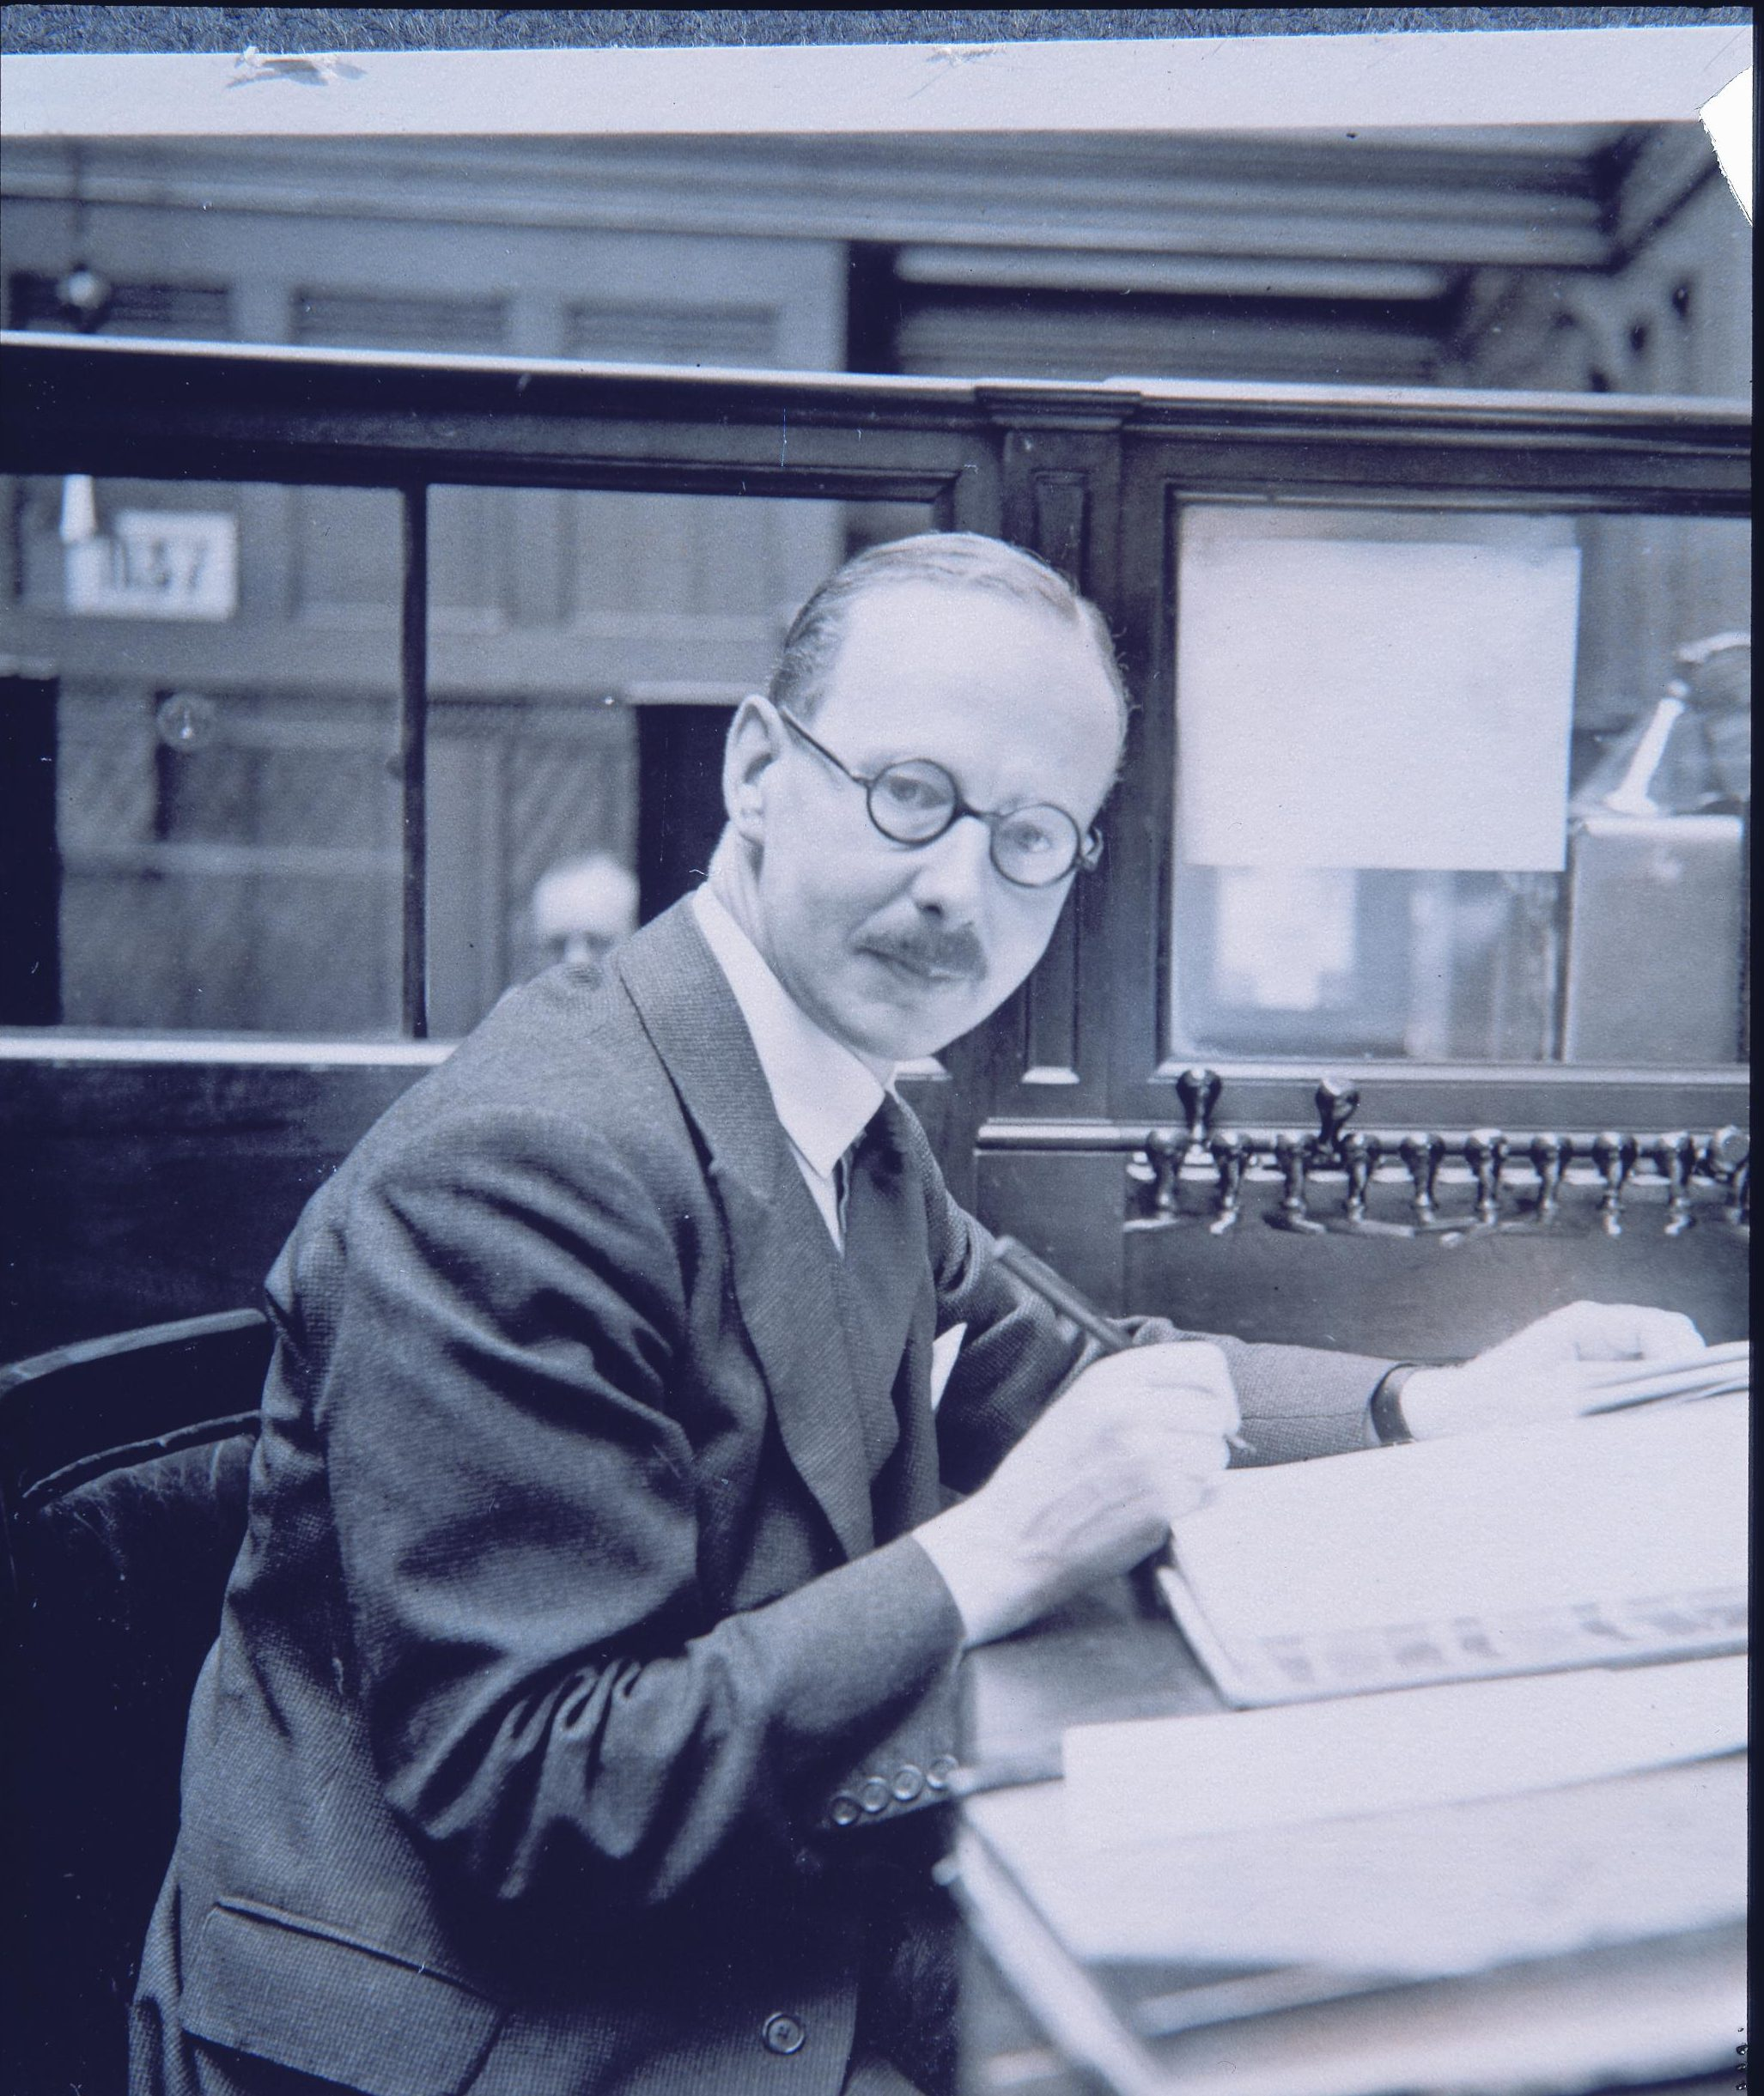 Mr Scott, Rothschild clerk, from a privately compiled album of photographs of New Court staff, c.1937. Courtesy of The Rothschild Archive London.